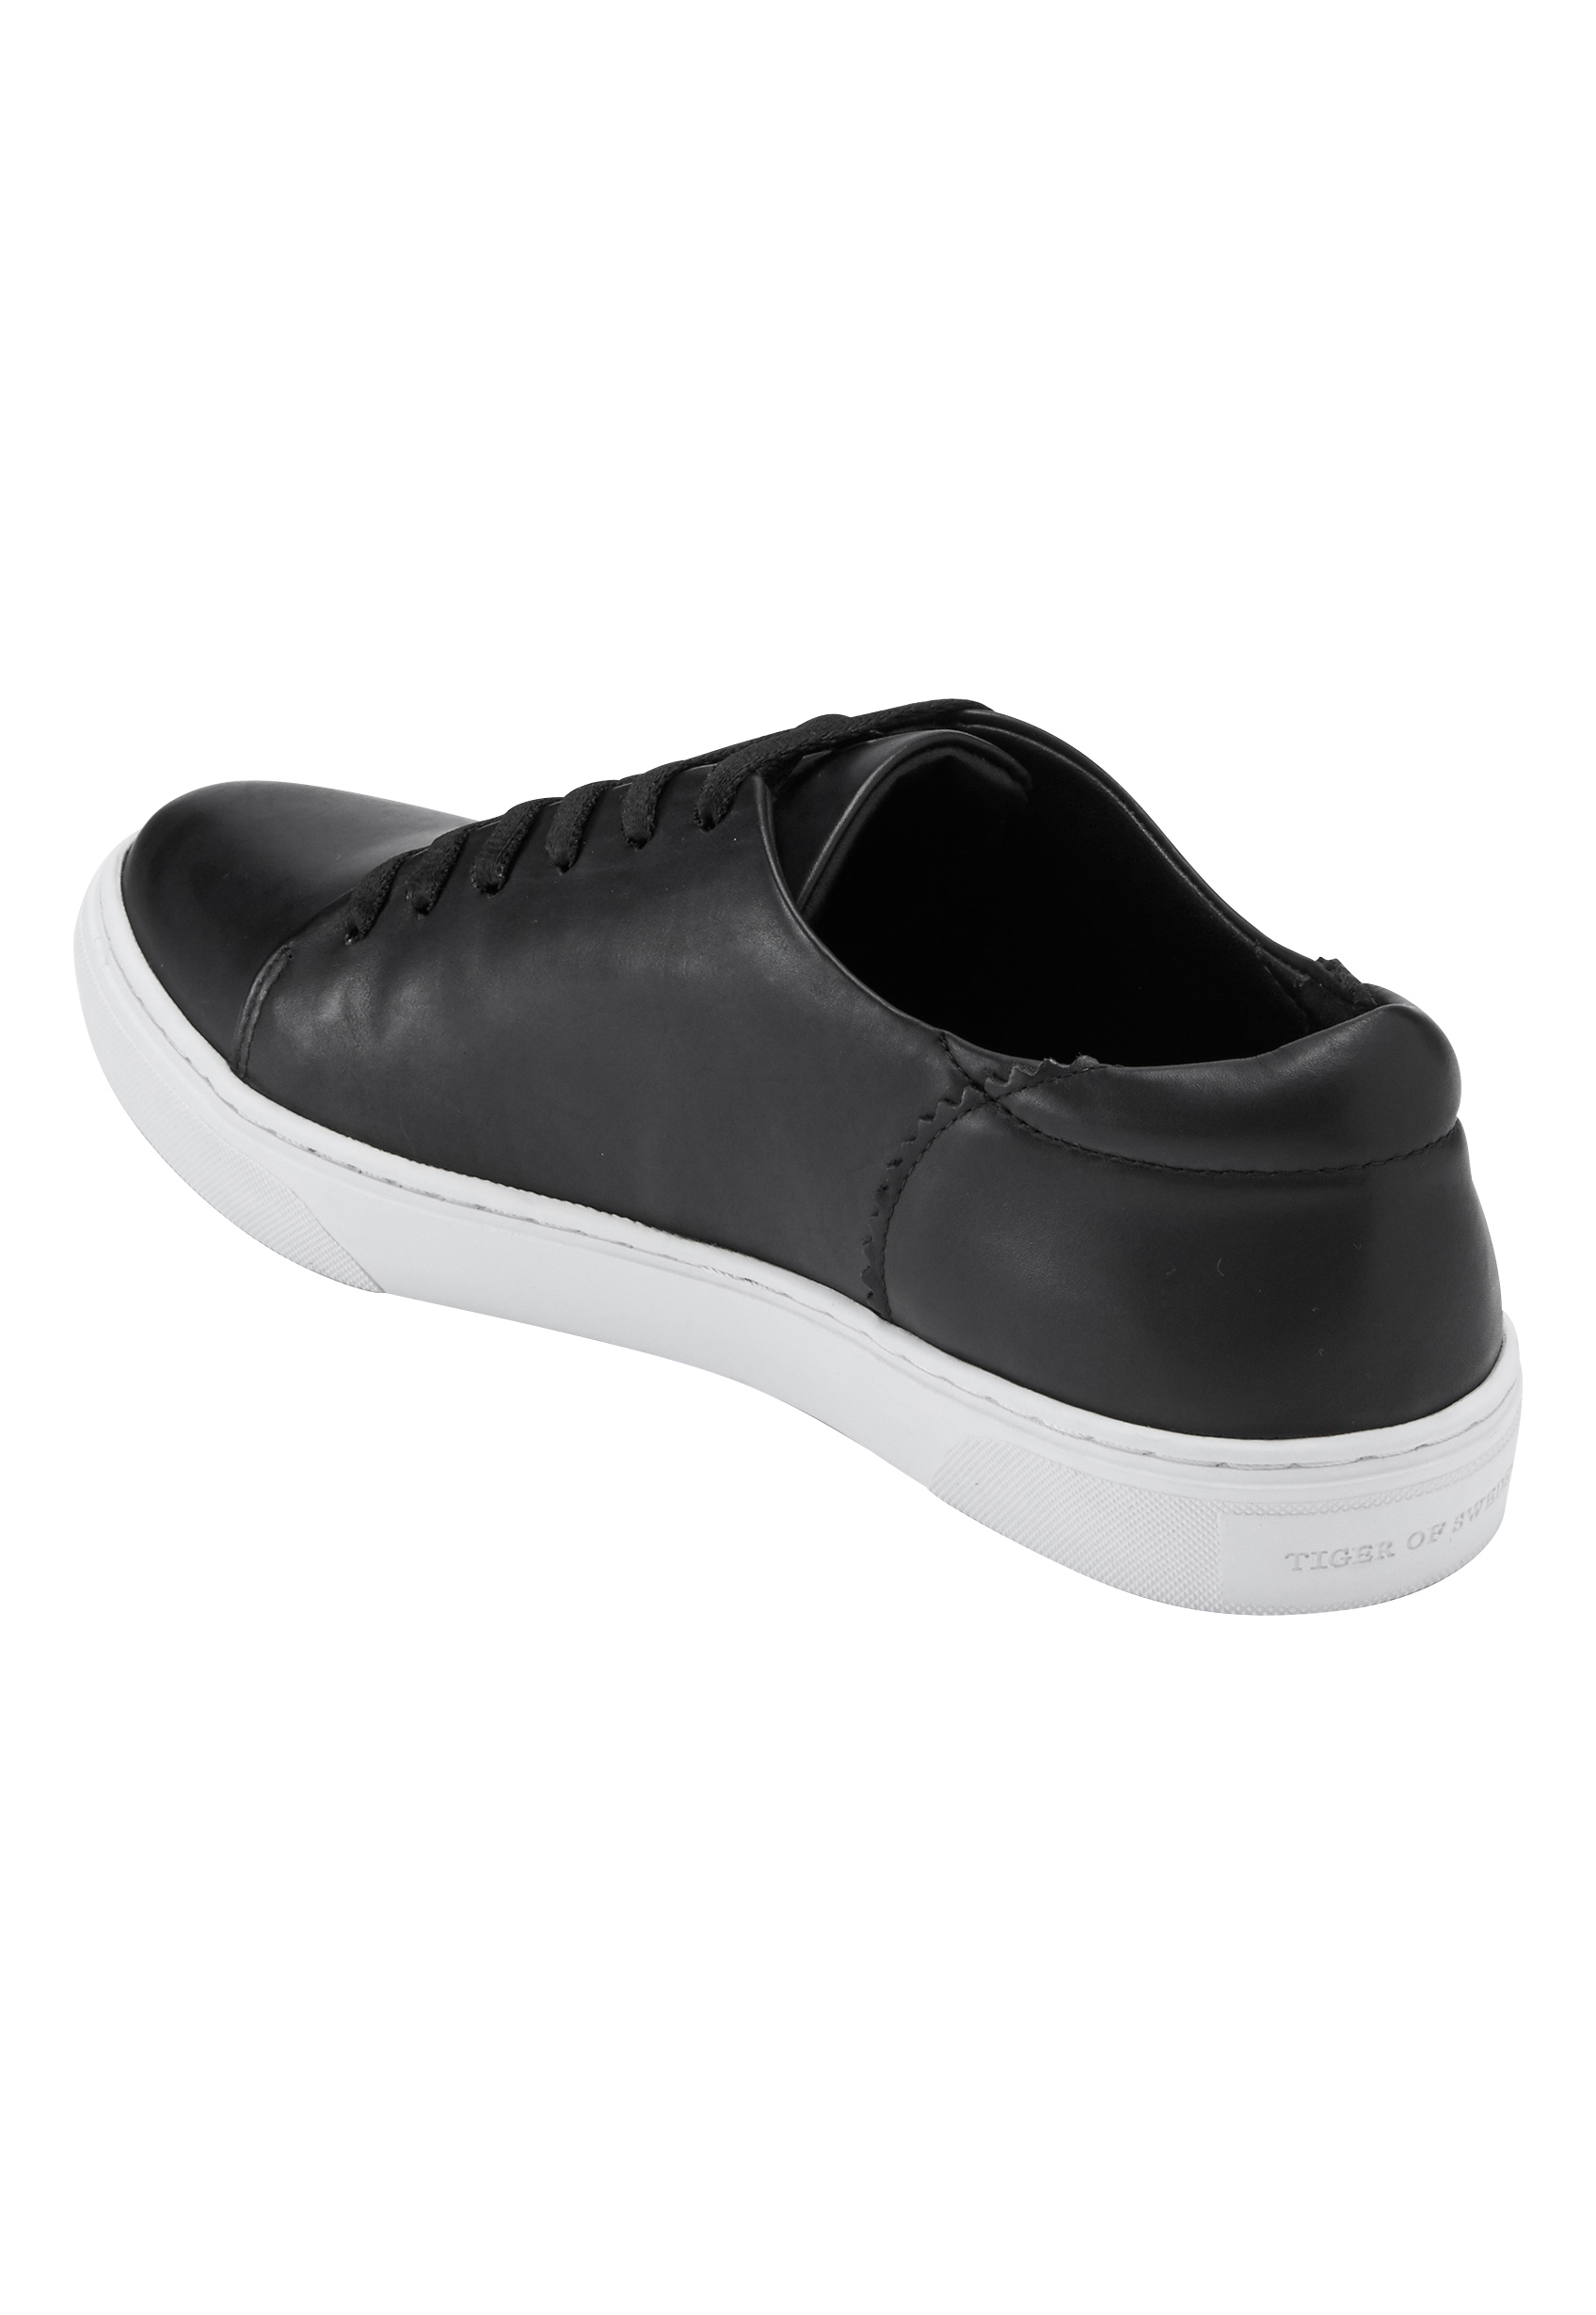 bc0e91e8ee56 TIGER OF SWEDEN Yvelle Shoes 050 Black - Bubbleroom